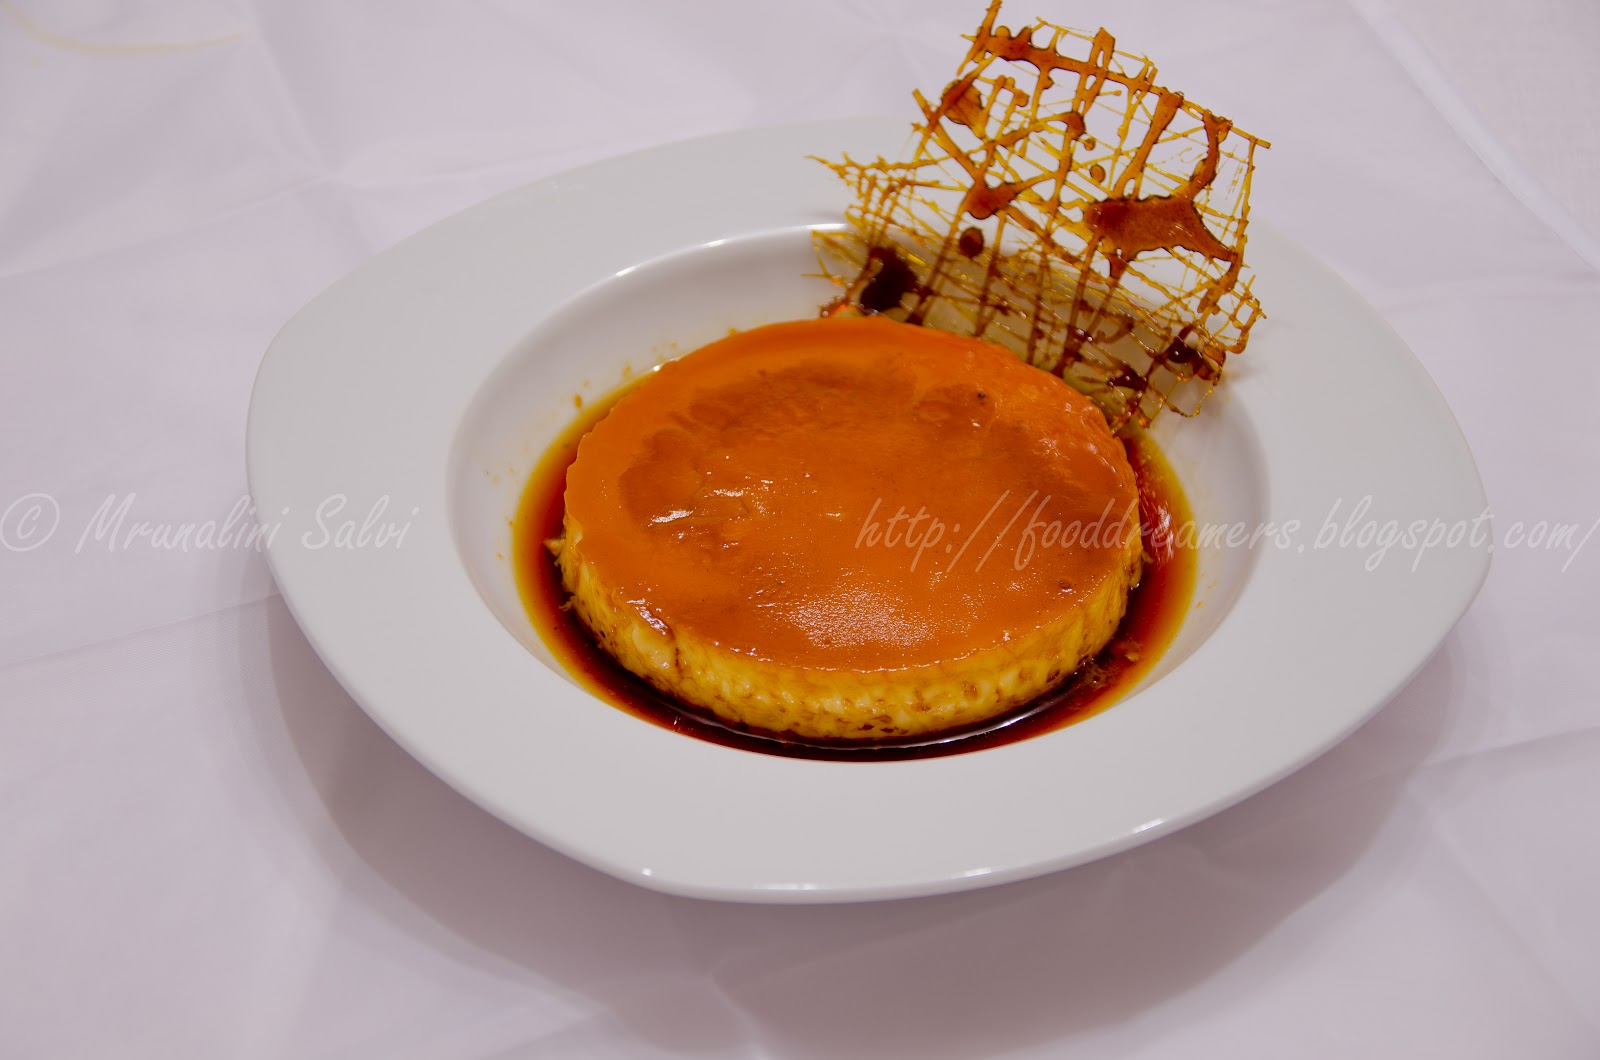 Food dreamers: Caramel custard